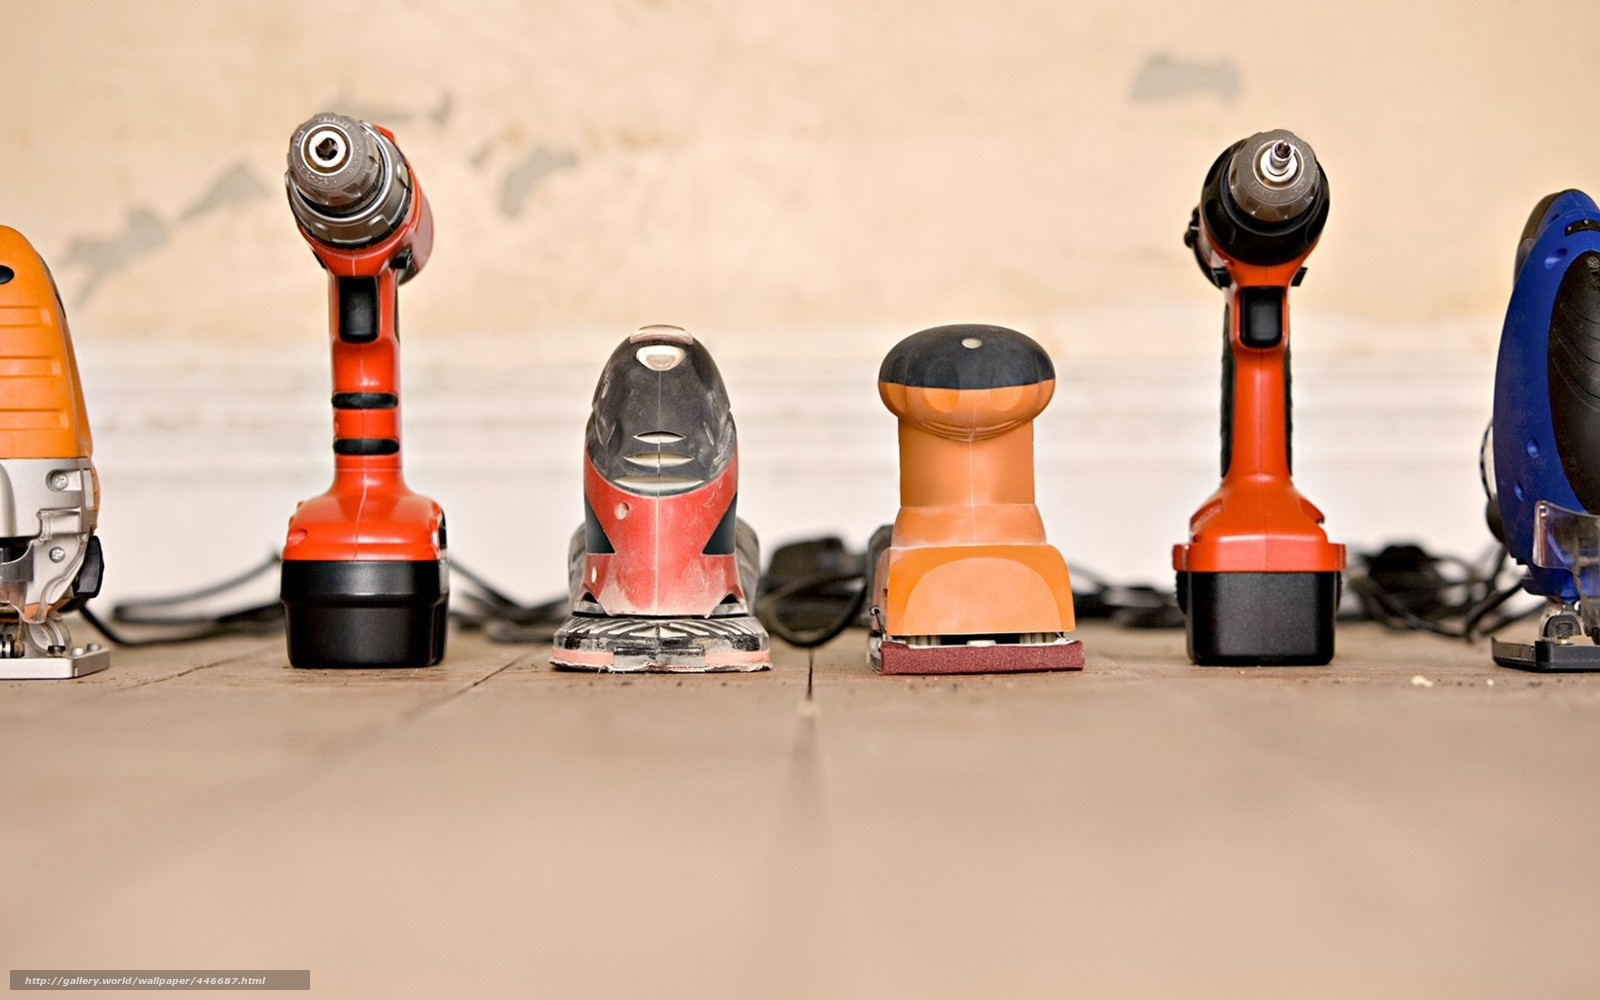 Download wallpaper construction tools screwdriver free desktop wallpaper in the resolution 1680x1050 picture 446687